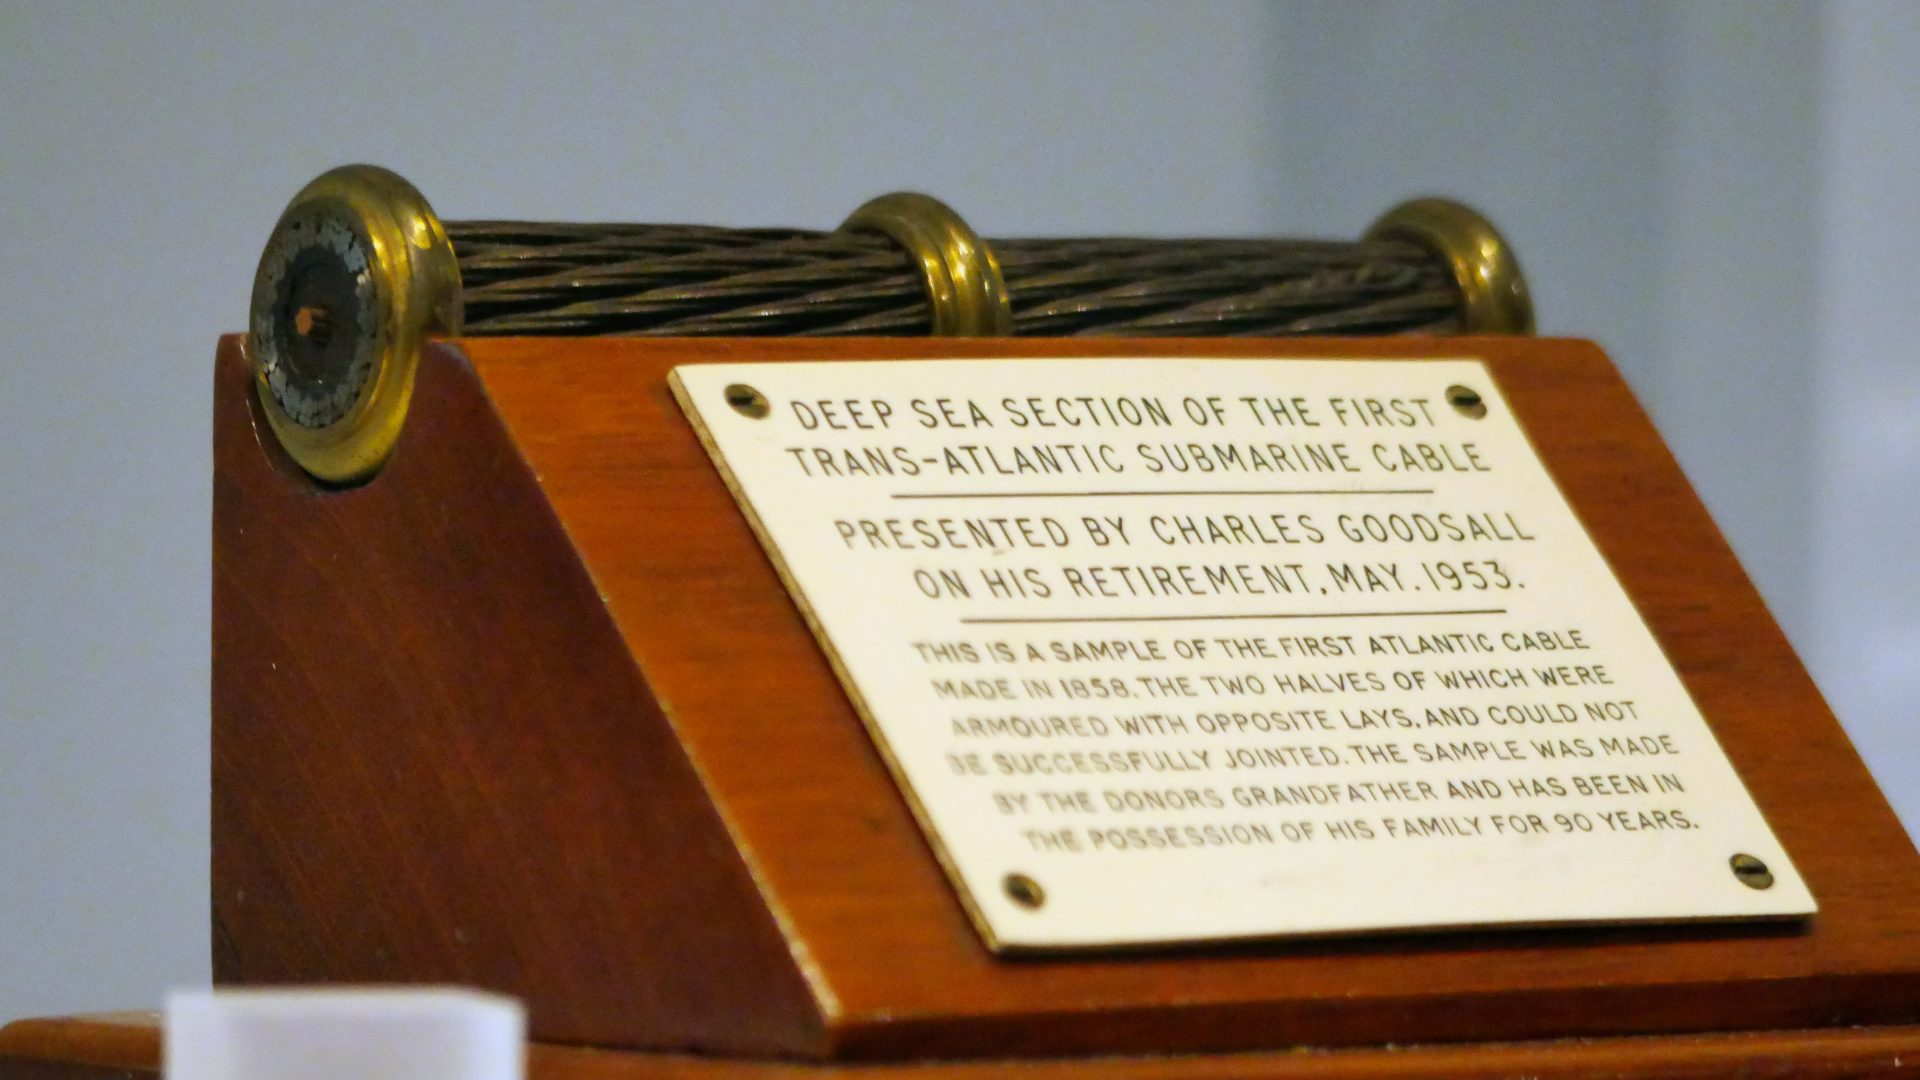 A commemorative segment of the first ever transatlantic telegraph cable, laid in 1858. On display in the Information Age gallery at the Science Museum, London.